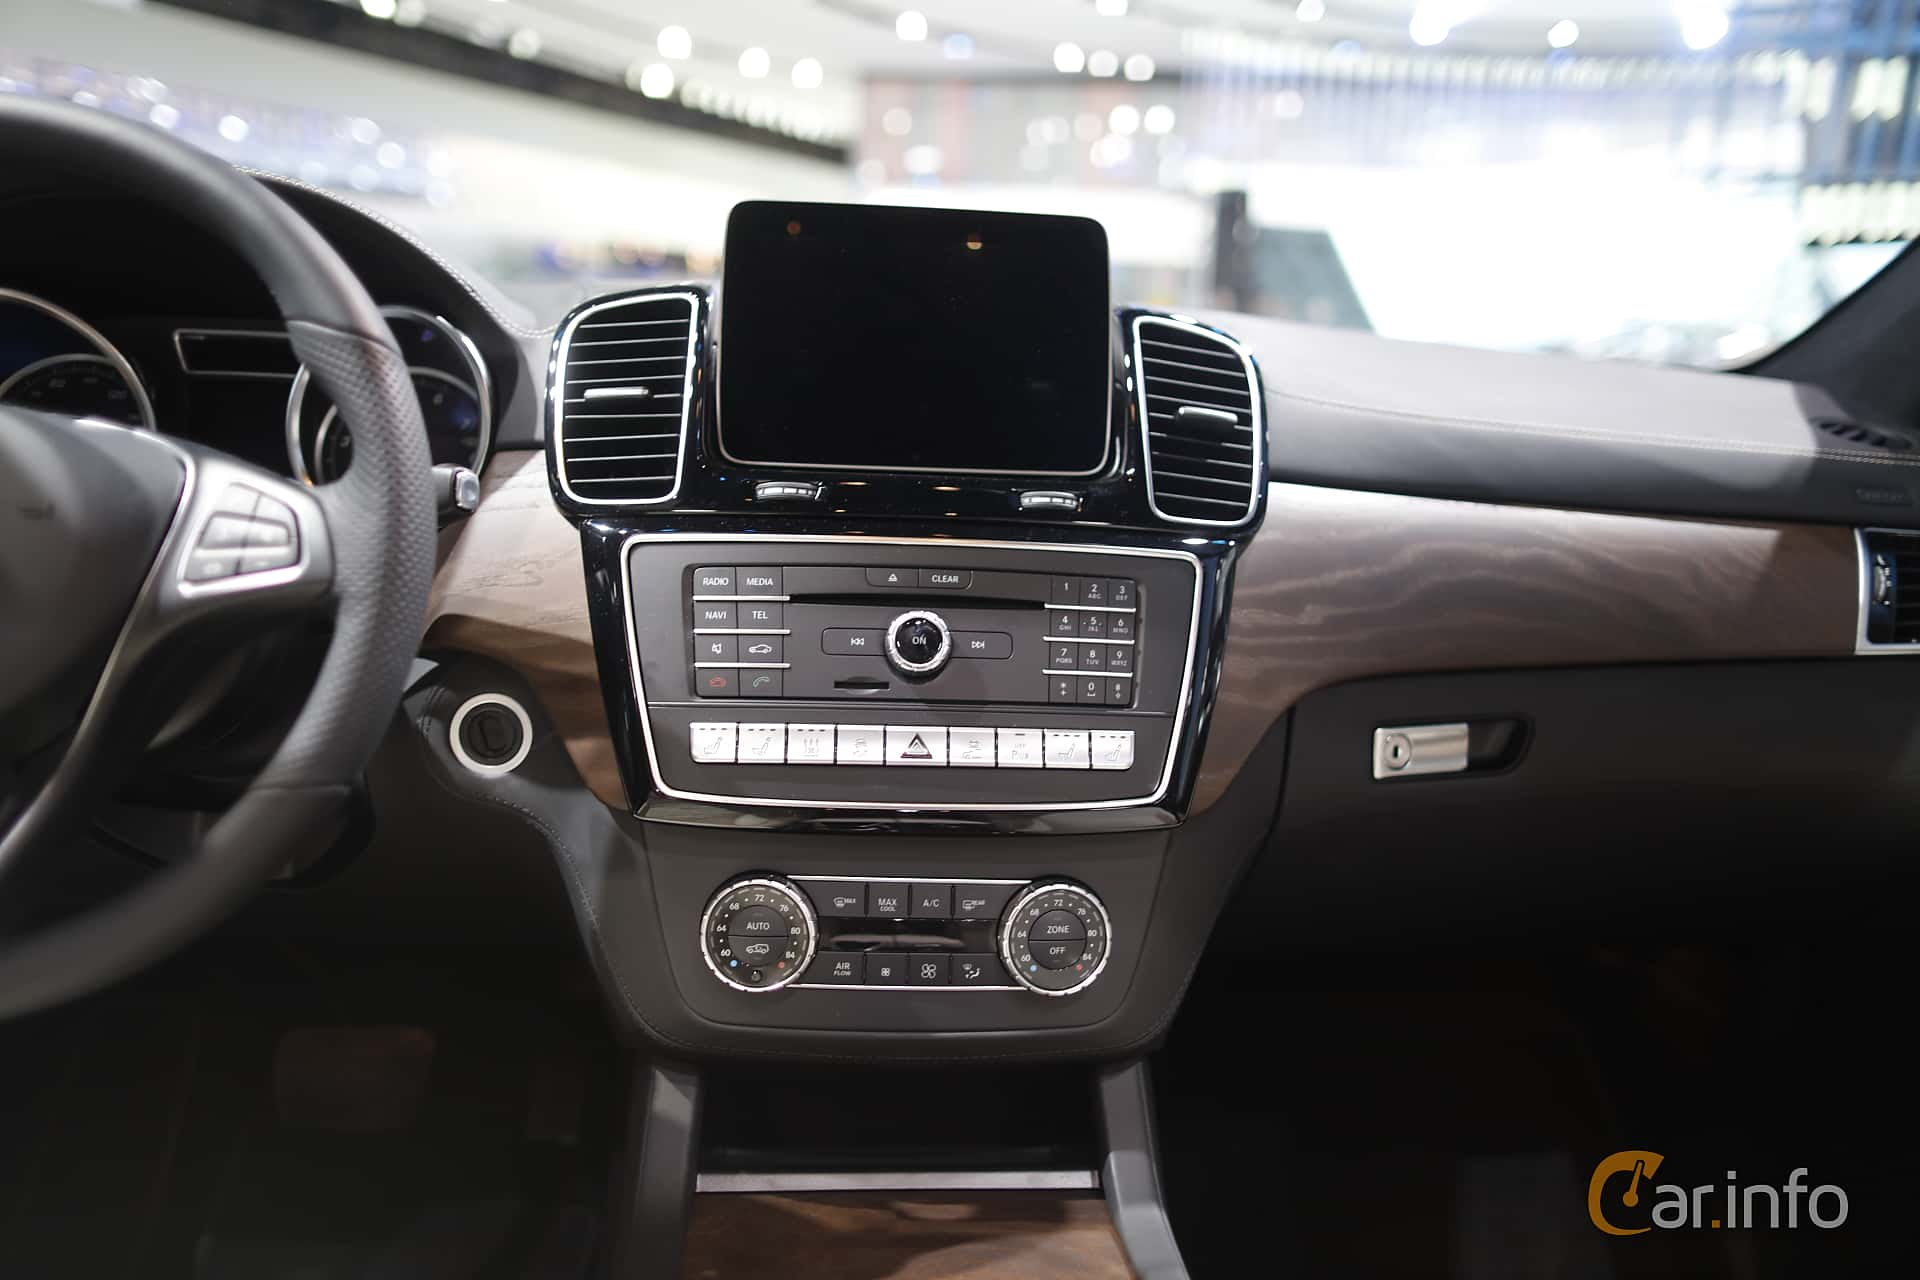 Interior of Mercedes-Benz GLE 500 e 4MATIC 3.0 V6 4MATIC 7G-Tronic Plus, 442ps, 2017 at North American International Auto Show 2017